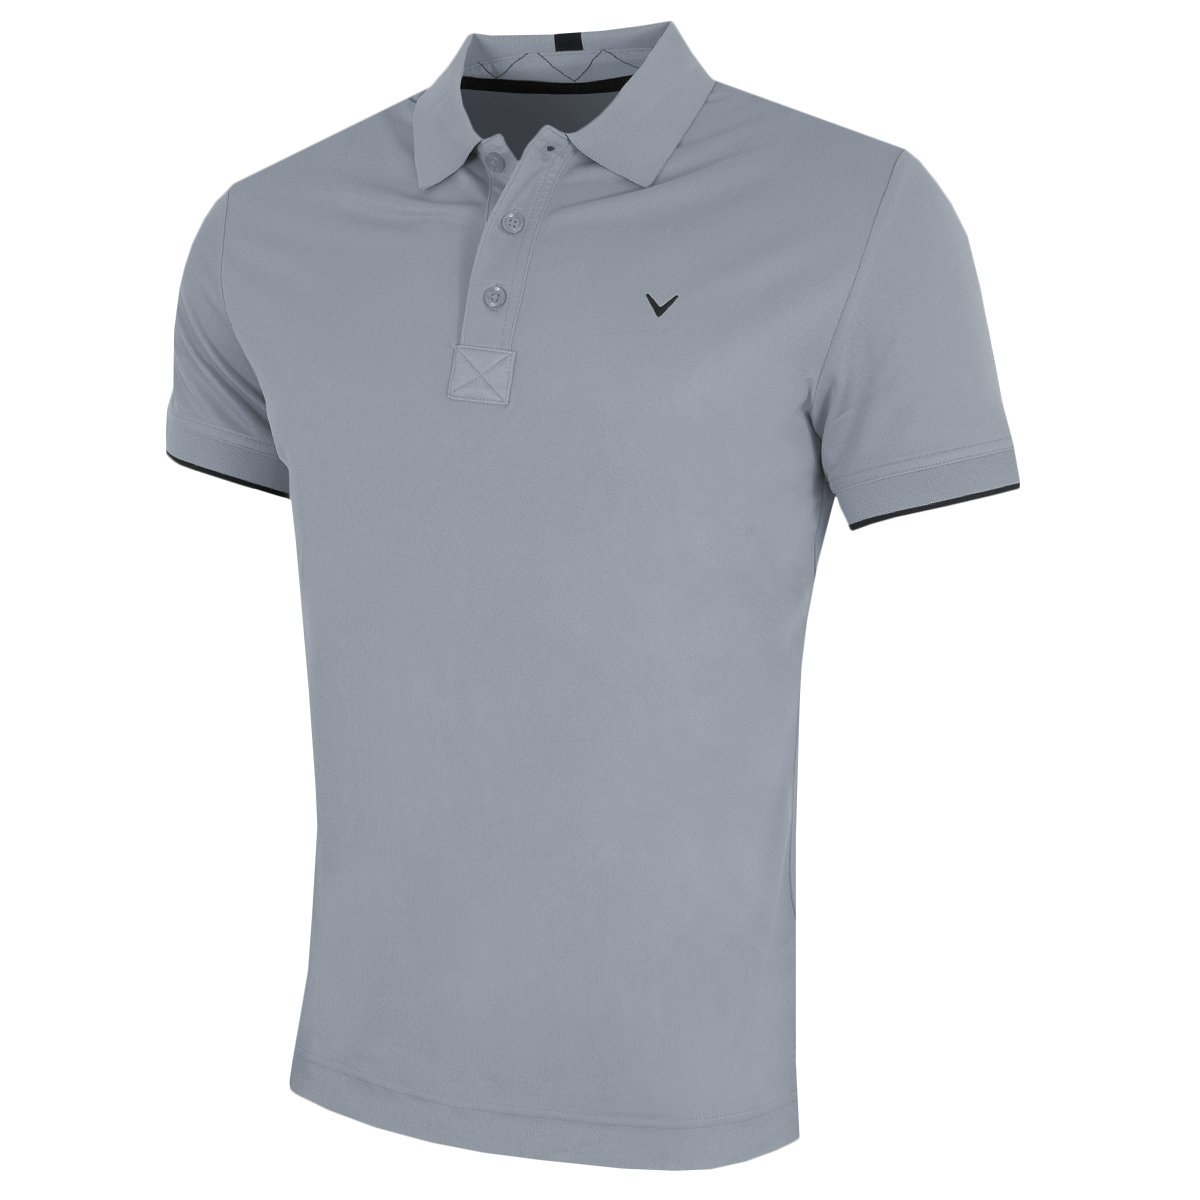 Callaway Golf 2018 Hommes Opti-Dri X Polo à pointe contrastée Irish Green XXL